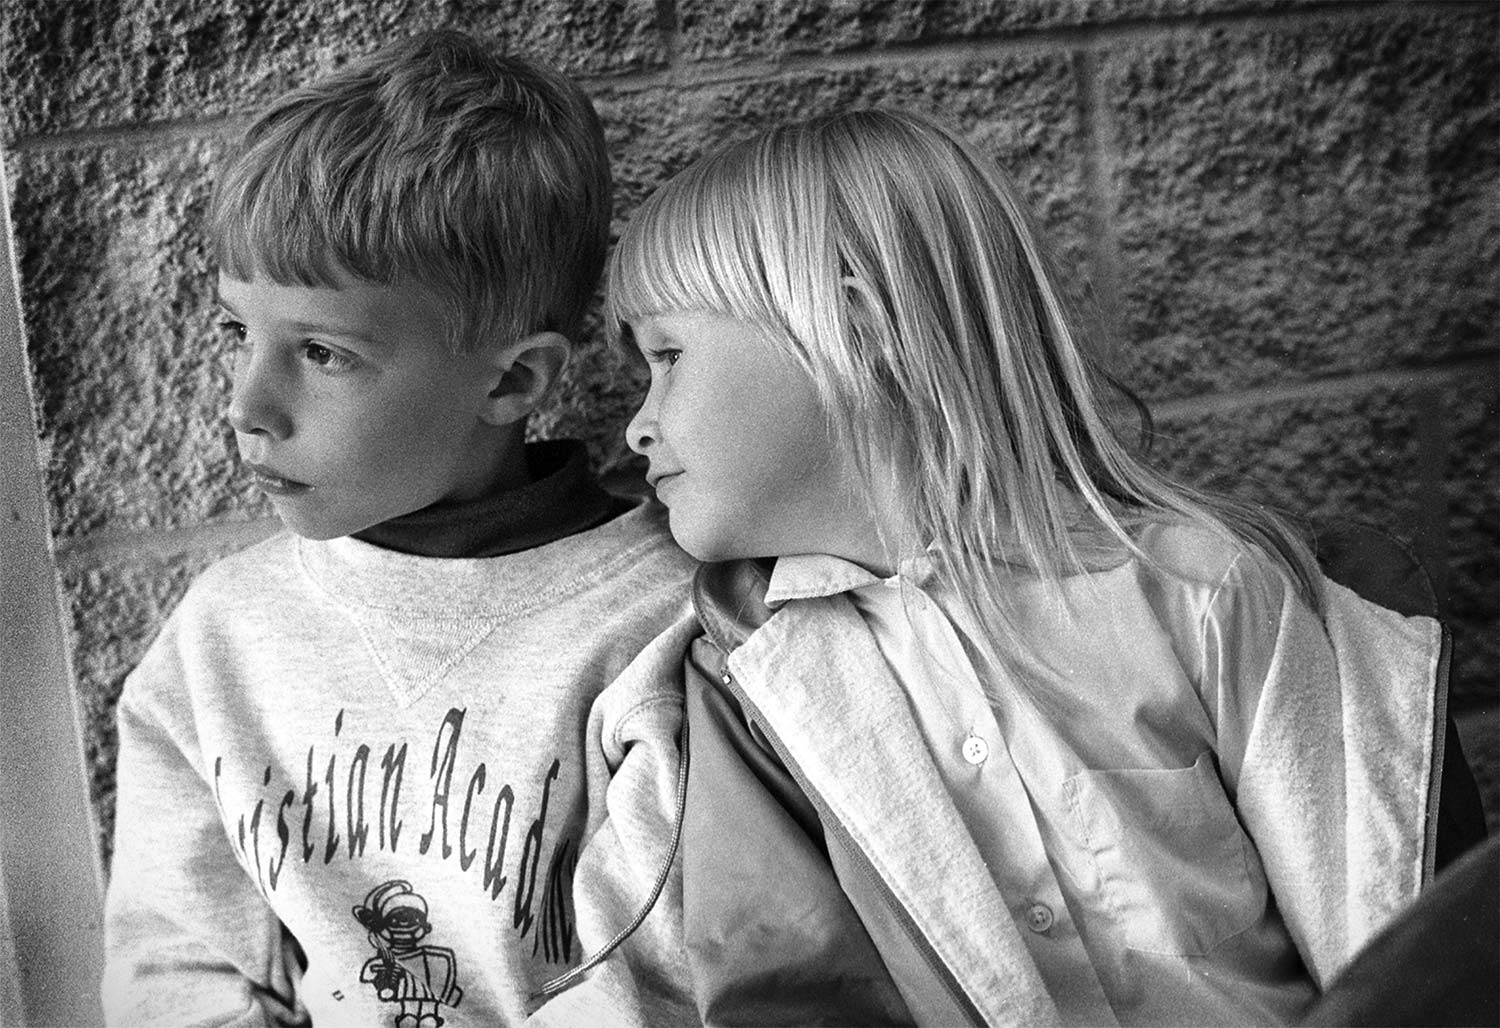 Waiting for their ride home after a long day at school, Will Ellison and Kelsey Leach look outside to see if their parents have arrived yet.  photo by Joshua Brown - 1997